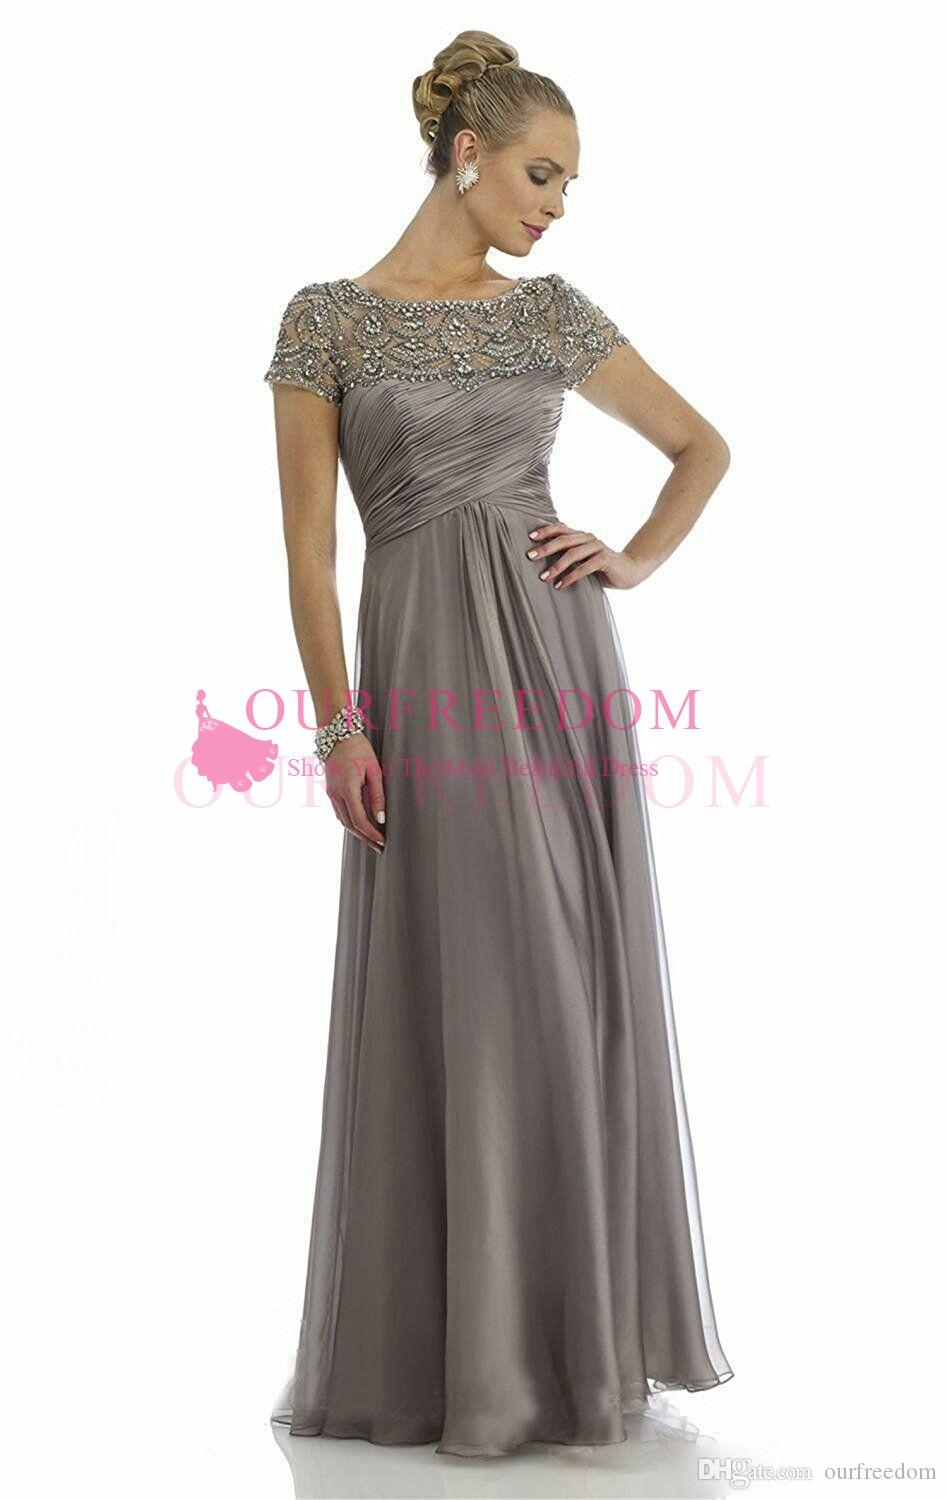 2019 Gray Crystal Mother Of Groom Bride Dresses Short Sleeve Floor Length Formal Occasion Evening Mother Dresses Custom Made